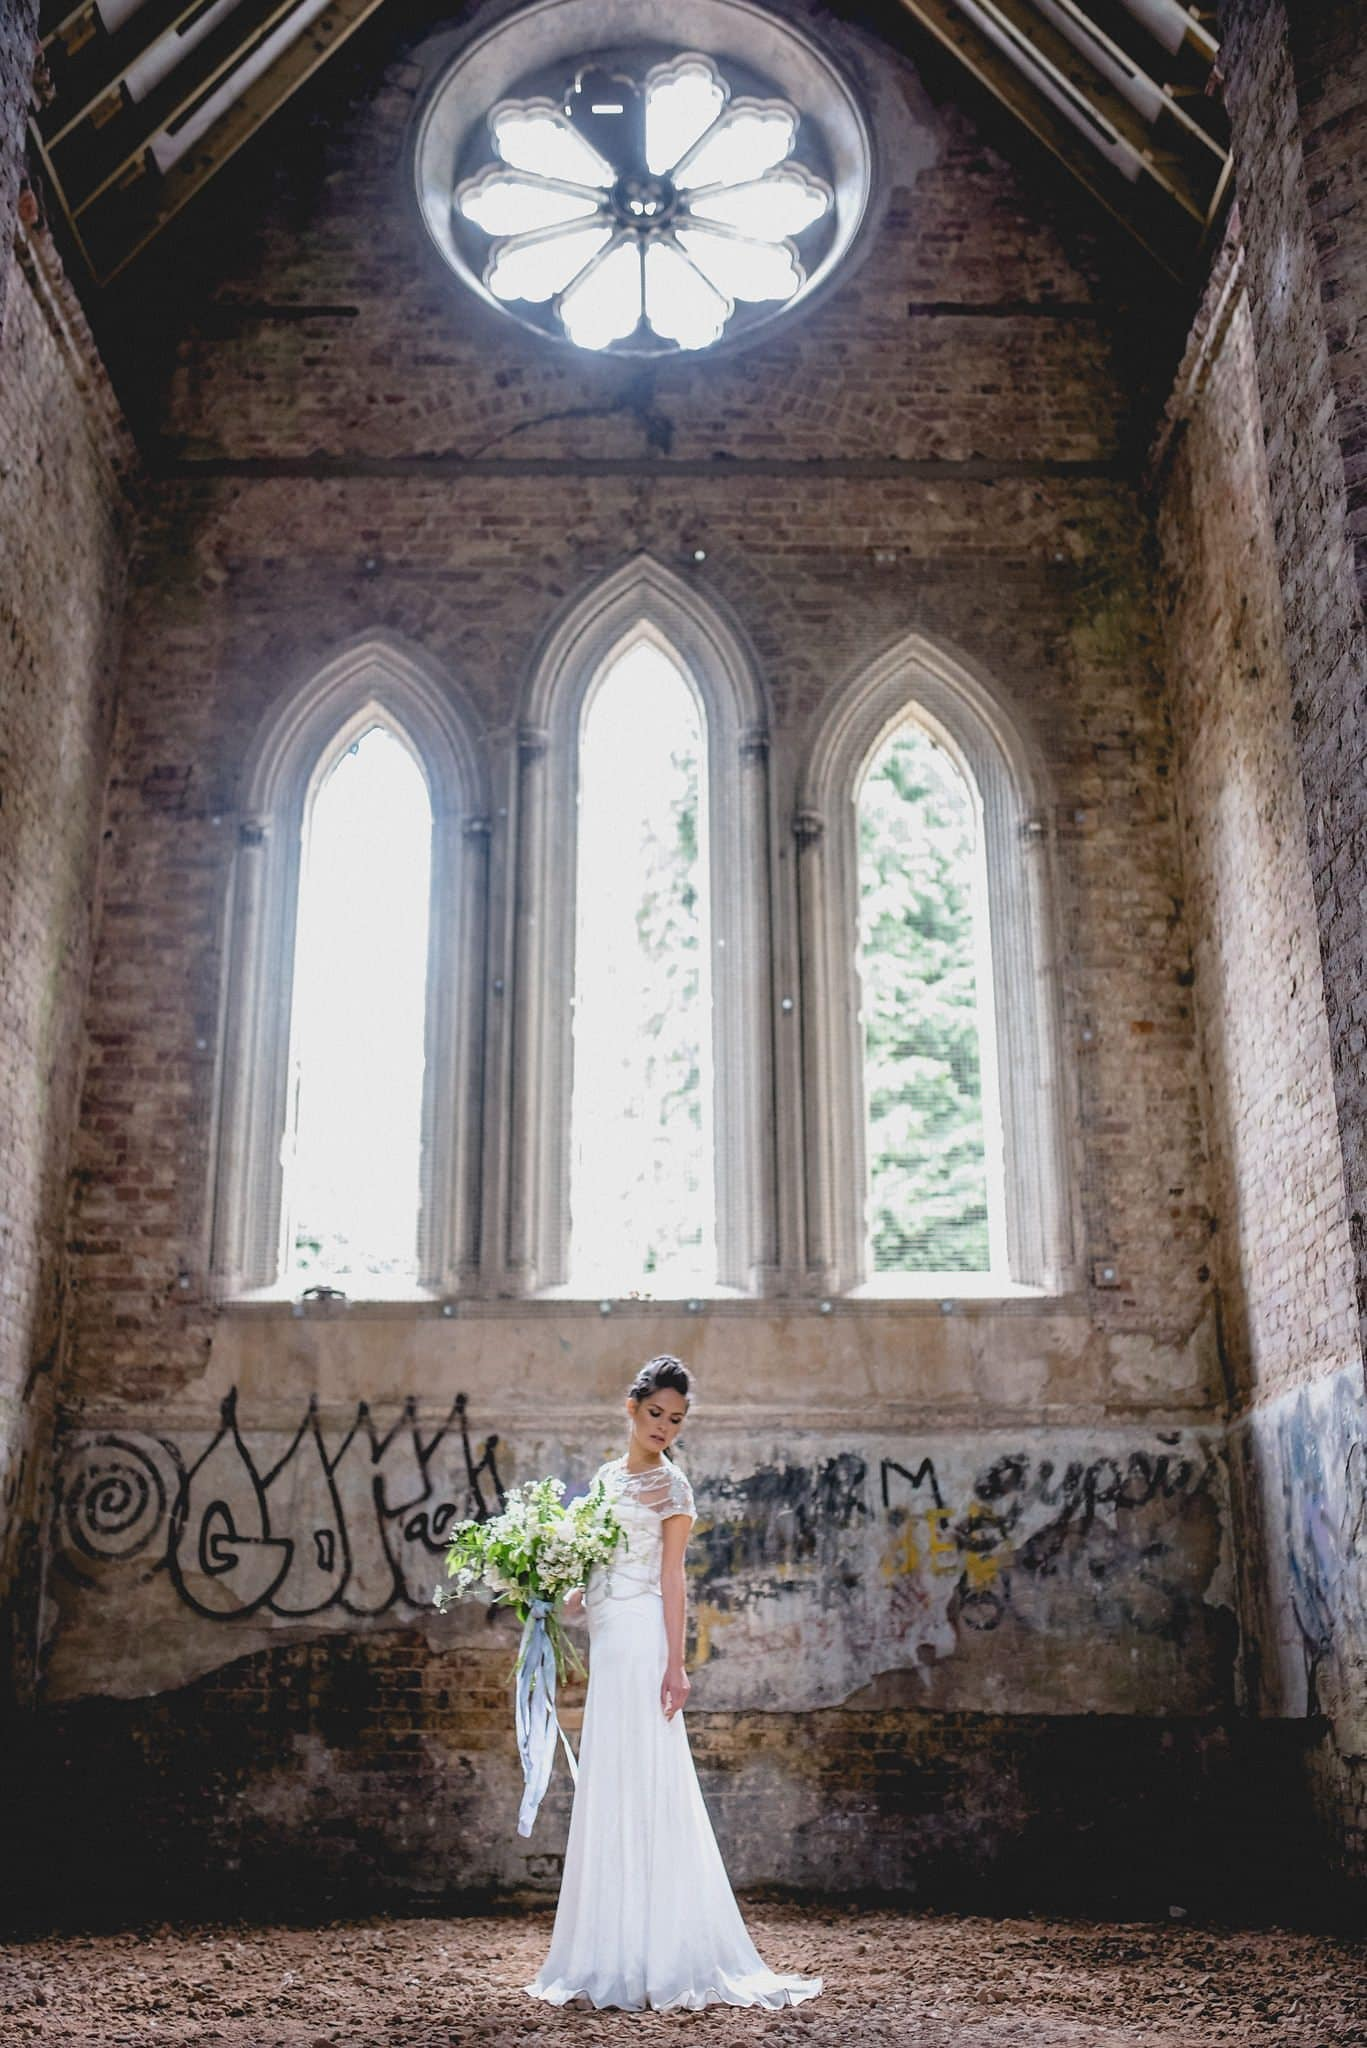 Sunlit bride in the rustic ruined Gothic chapel in Abney Park